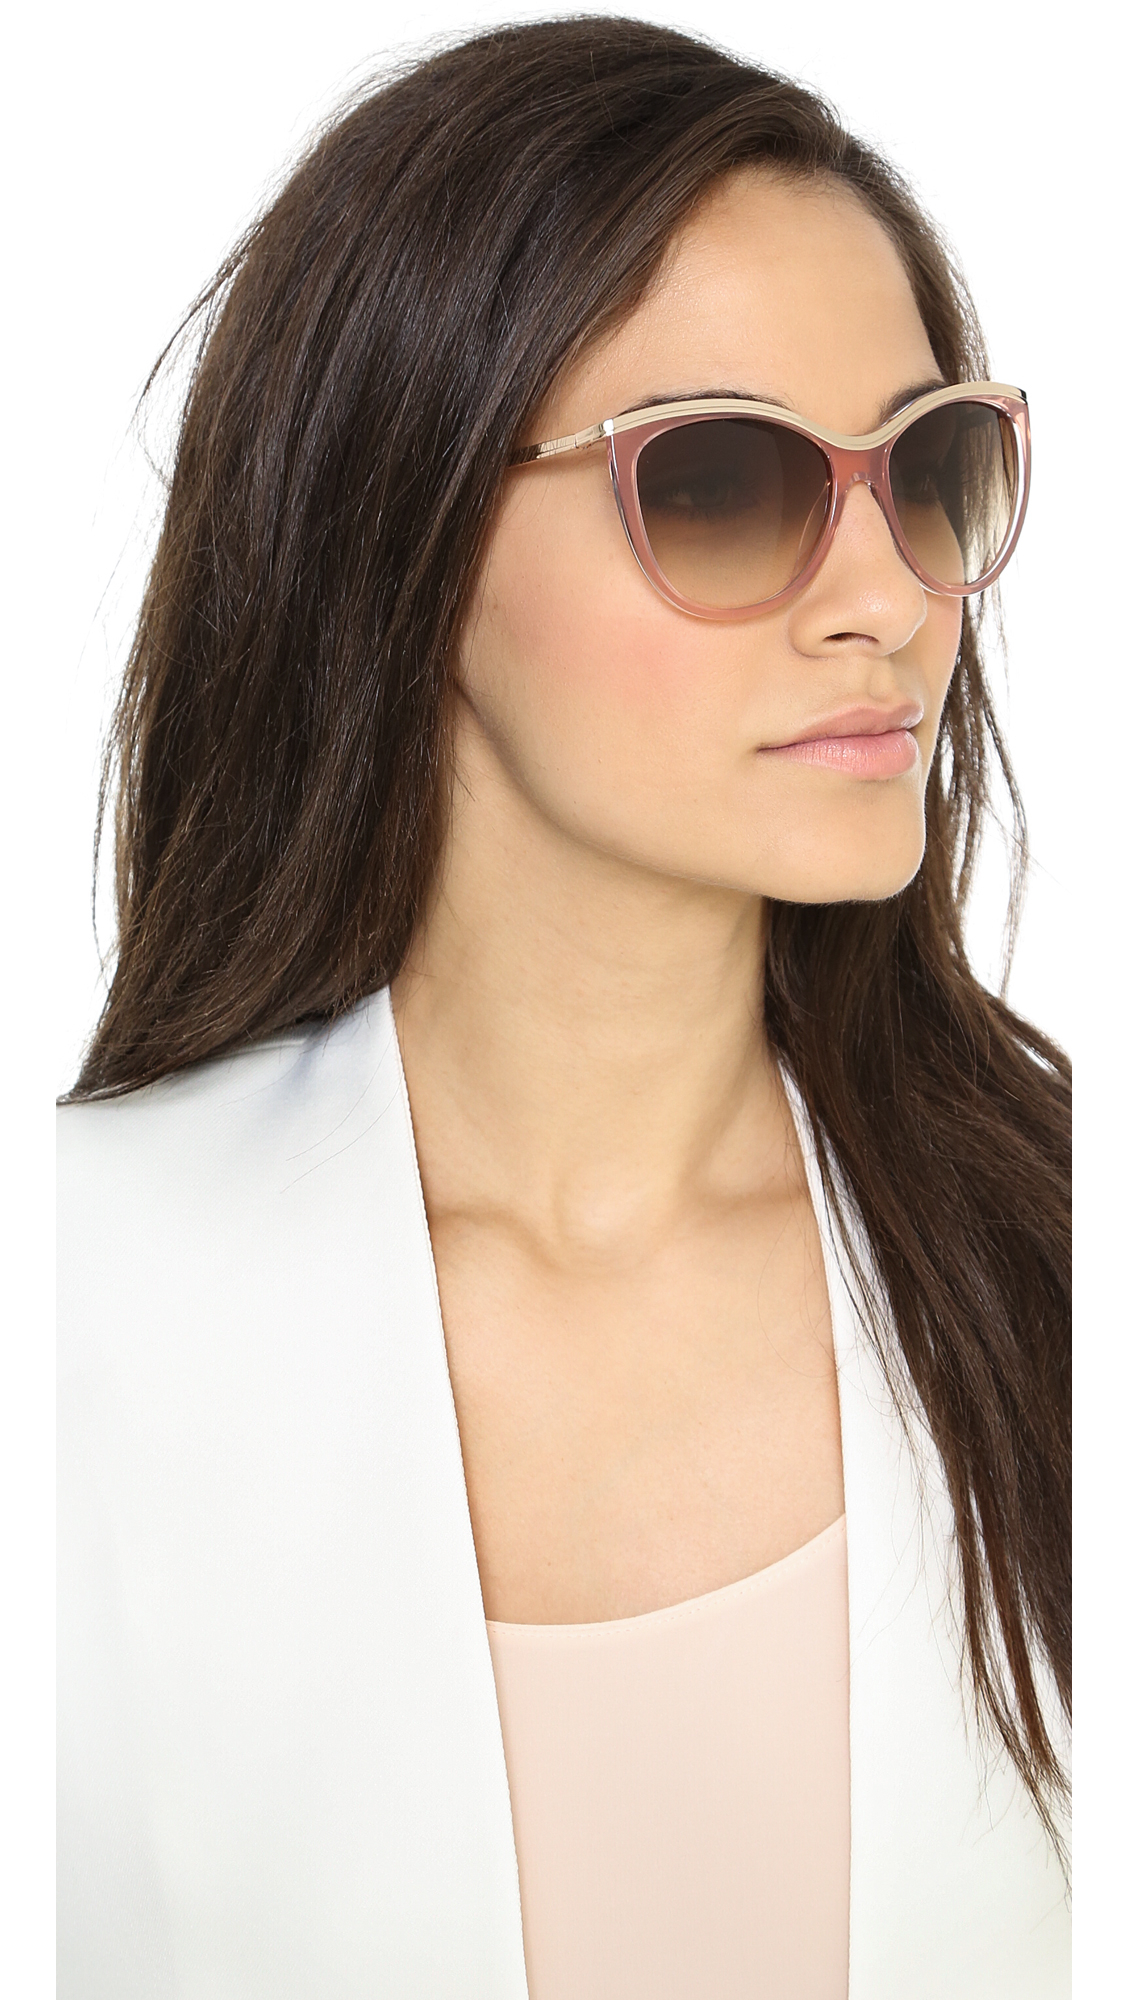 e467cbb368 Lyst - Kate Spade Harmony Sunglasses Neutralbrown Gradient in Pink